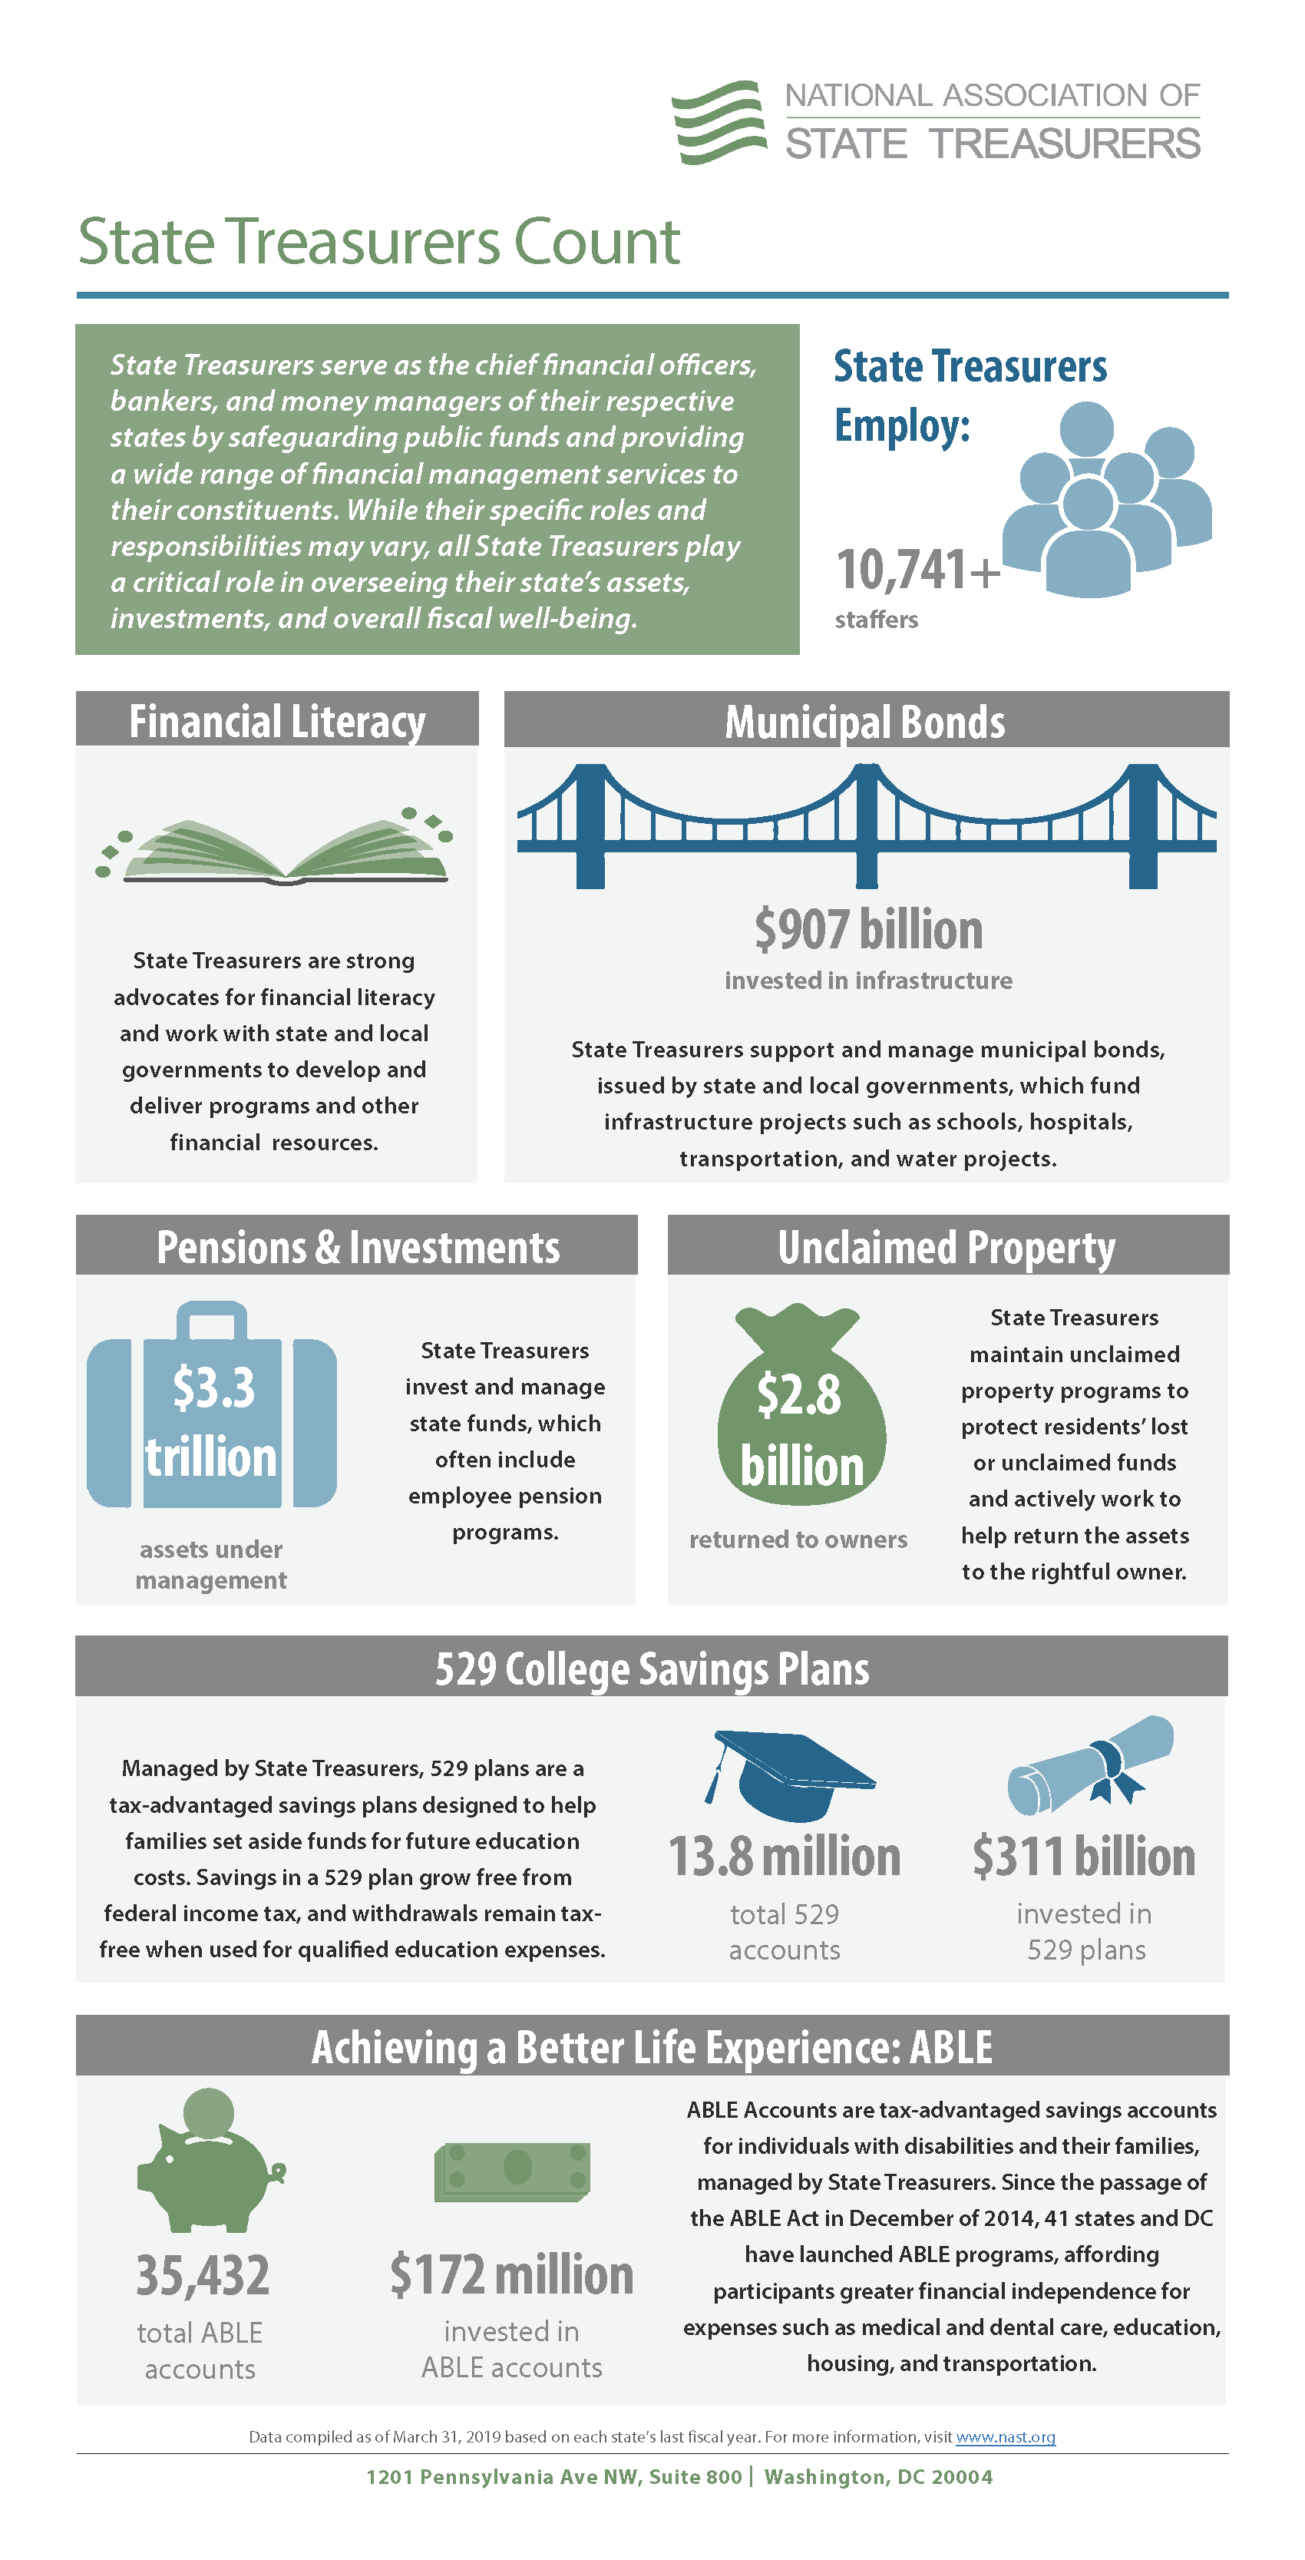 State Treasurers Count infographic